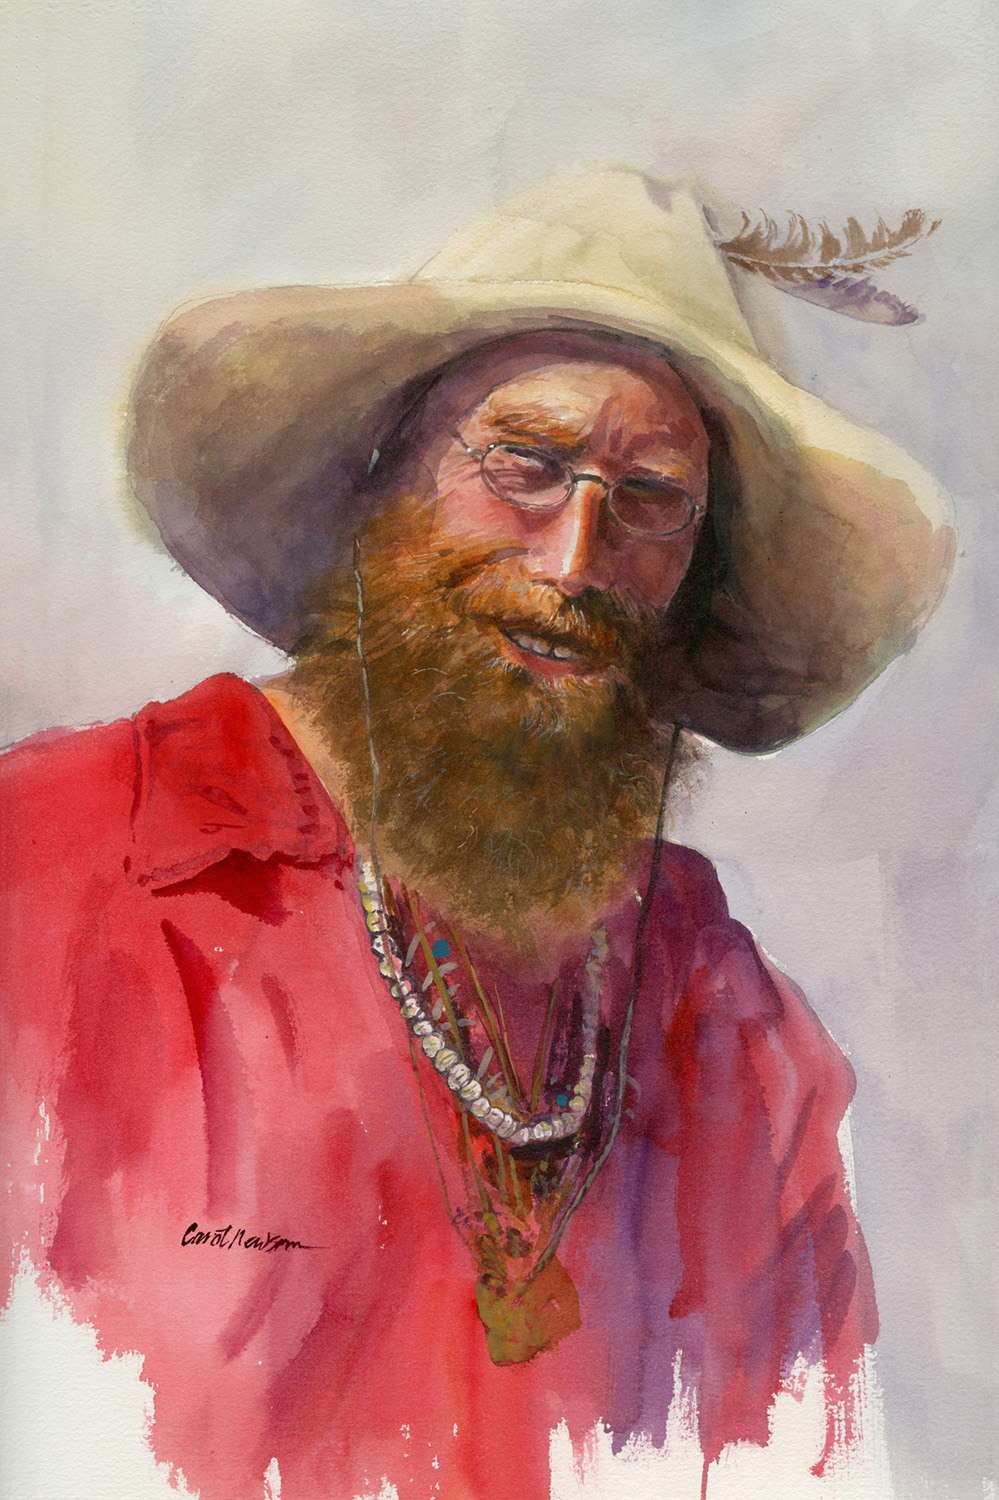 Well, he isn't a real Mountain Man, but he was playing one in the streets of Crested Butte in 2020.  18 x 24